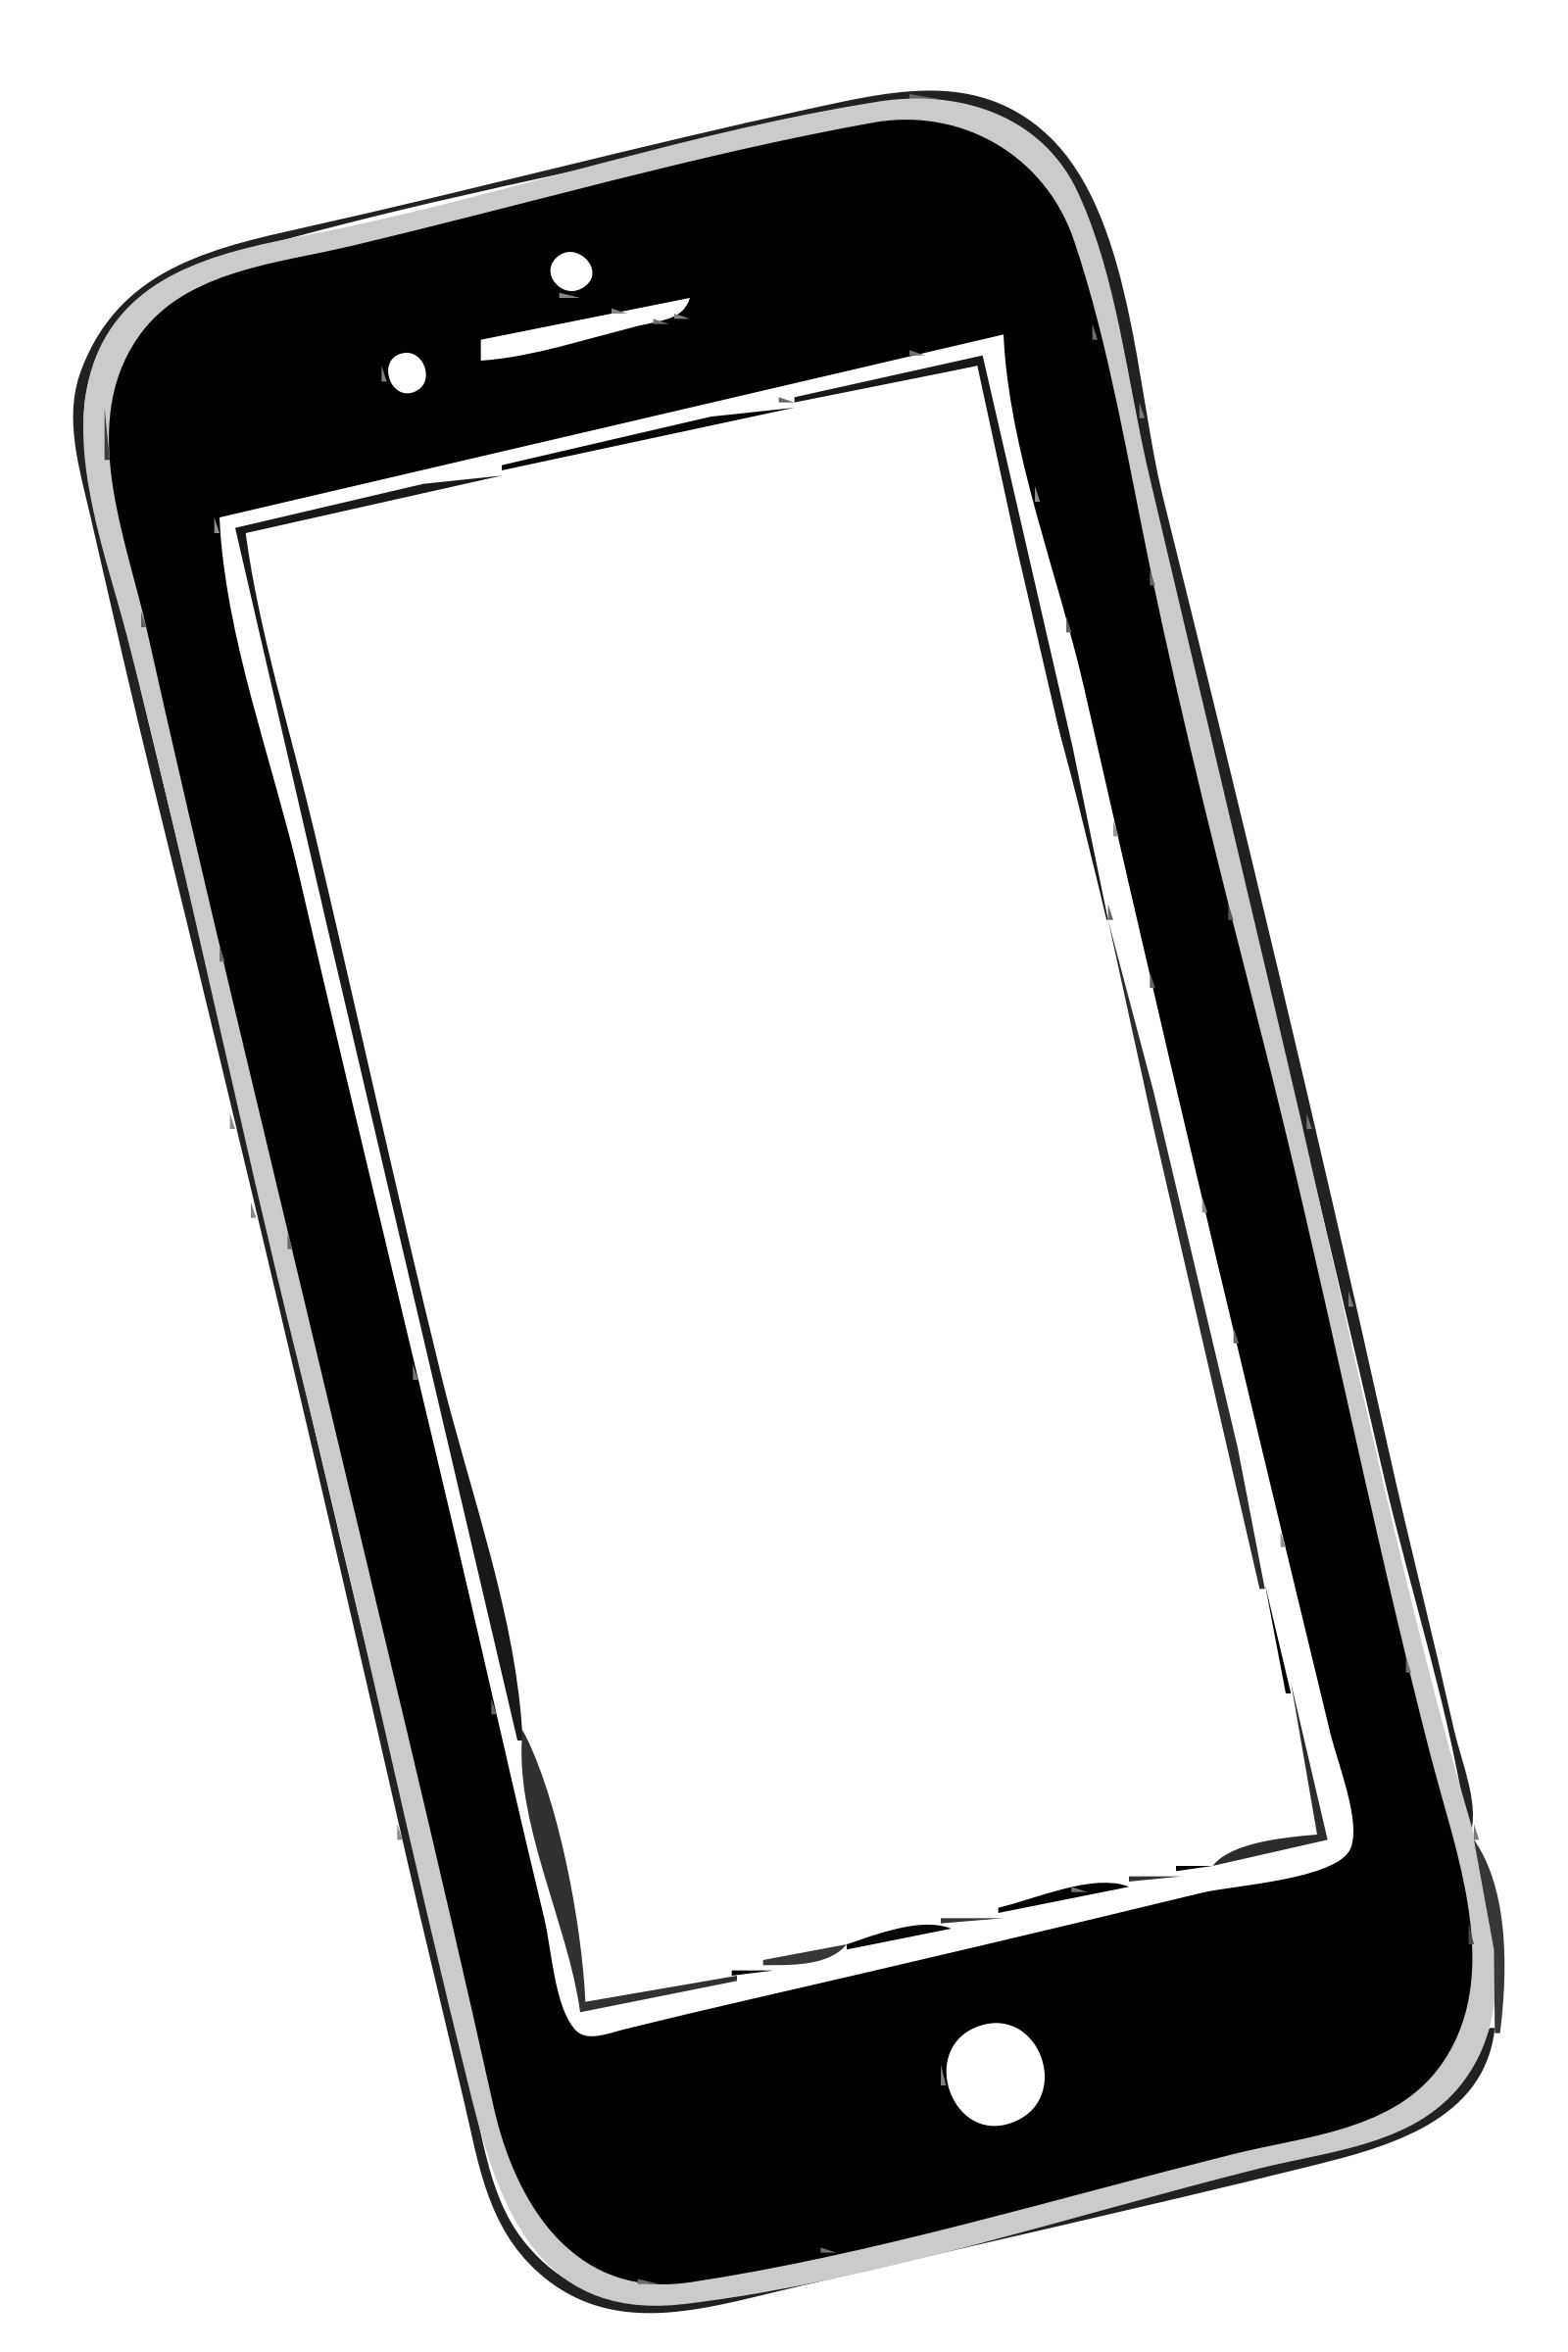 Phone clipart, Phone Transparent FREE for download on.